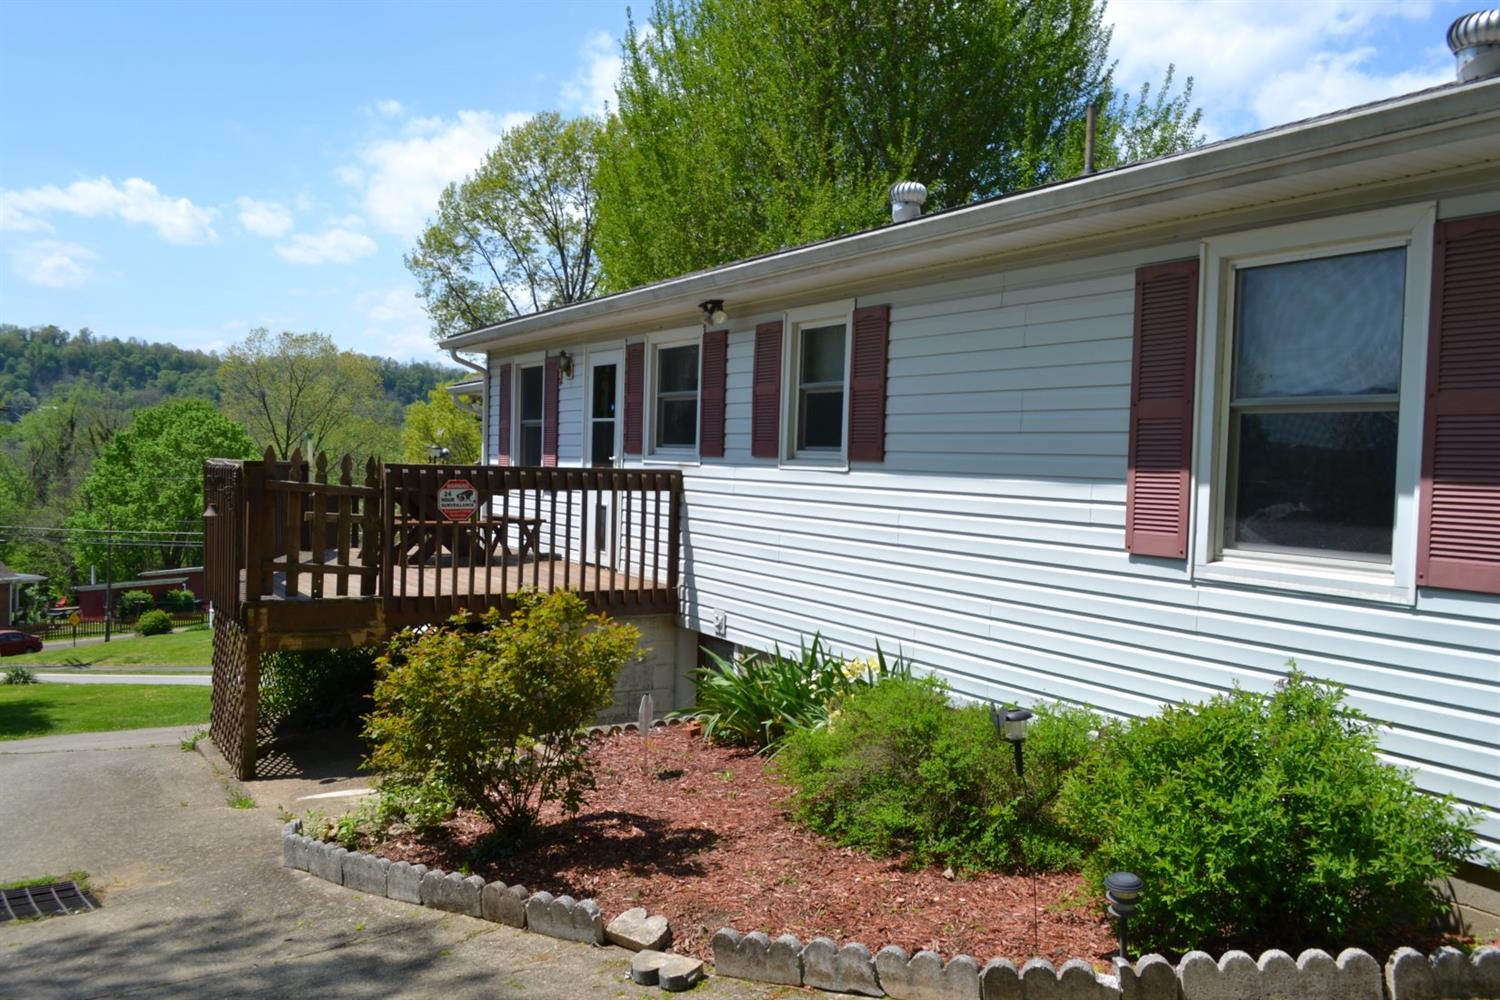 Photo 2 for 870 Market St Huntington Twp., OH 45101